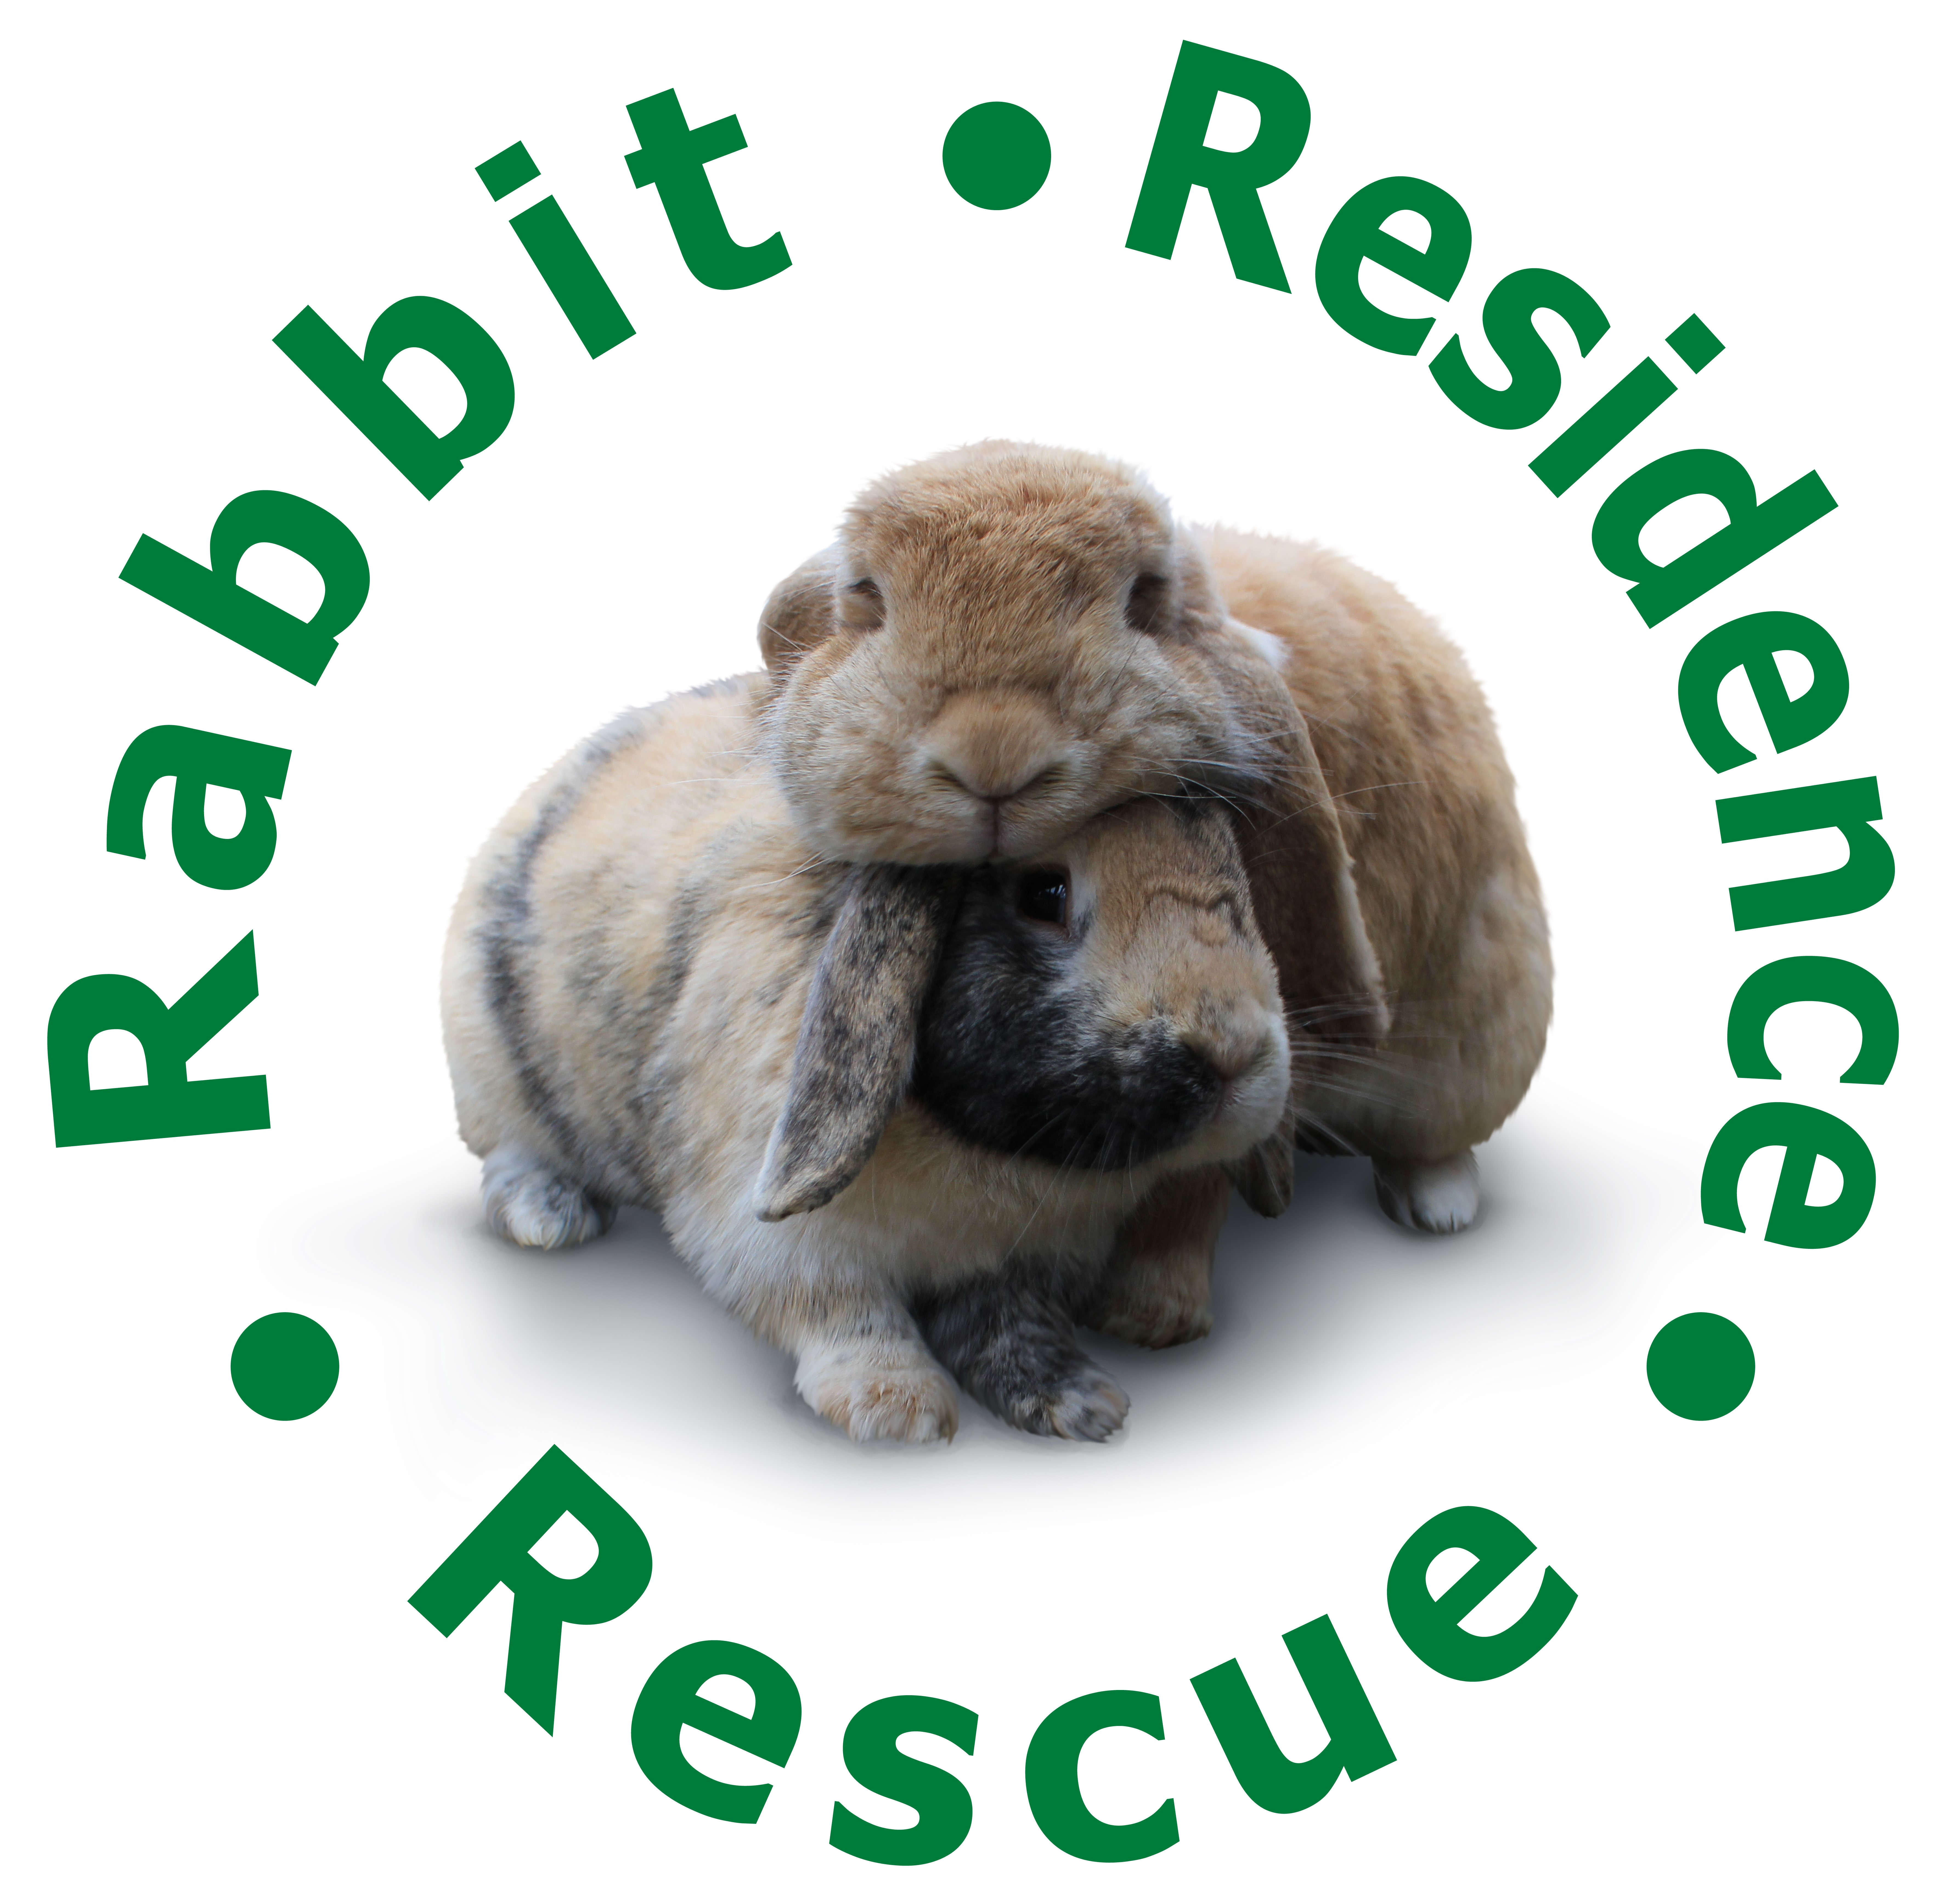 RABBIT RESIDENCE RESCUE